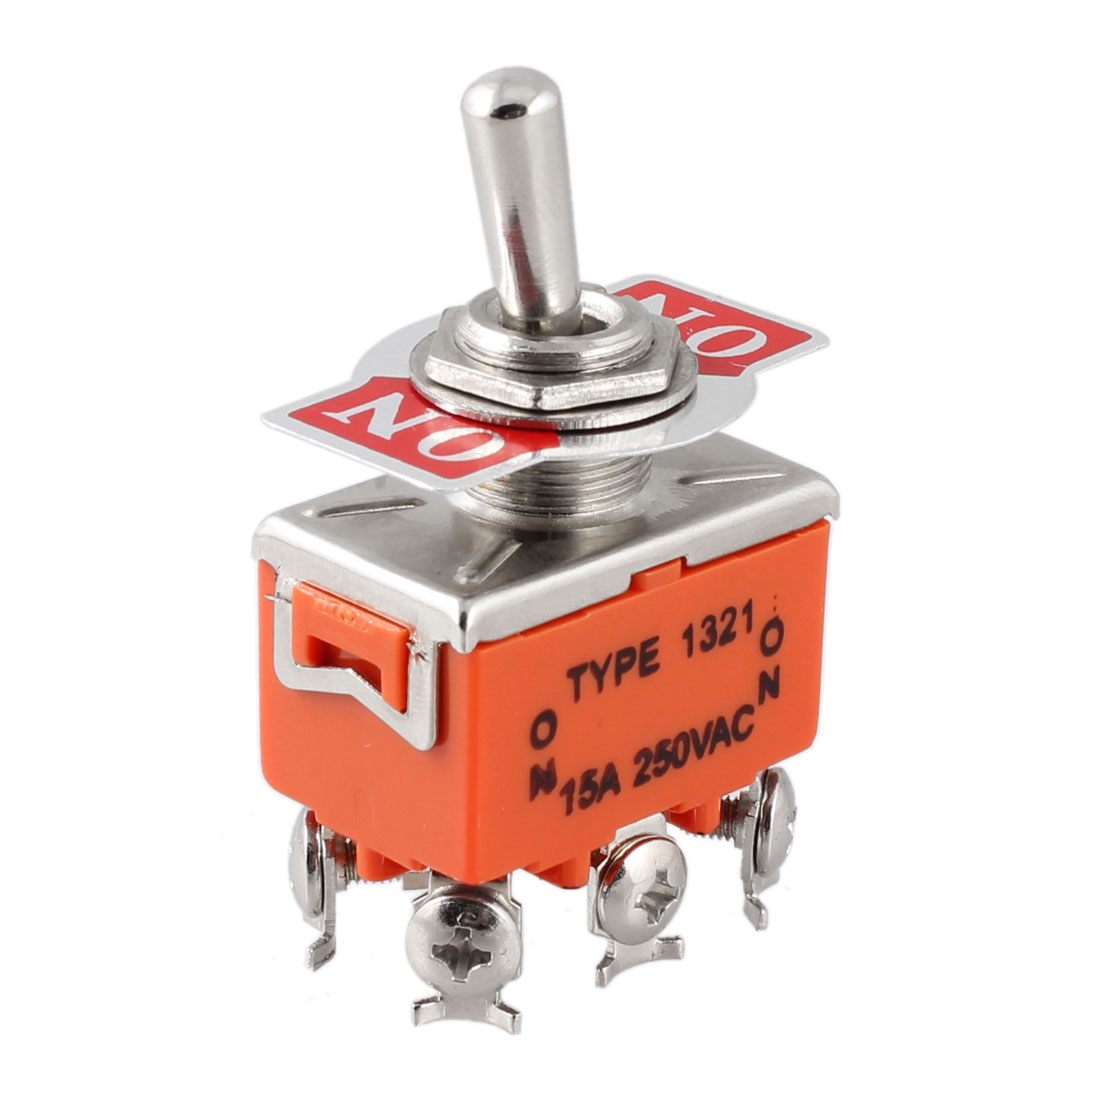 AC 250V 15A 6 Screw Terminals ON/ON 2 Position DPDT Toggle Switch